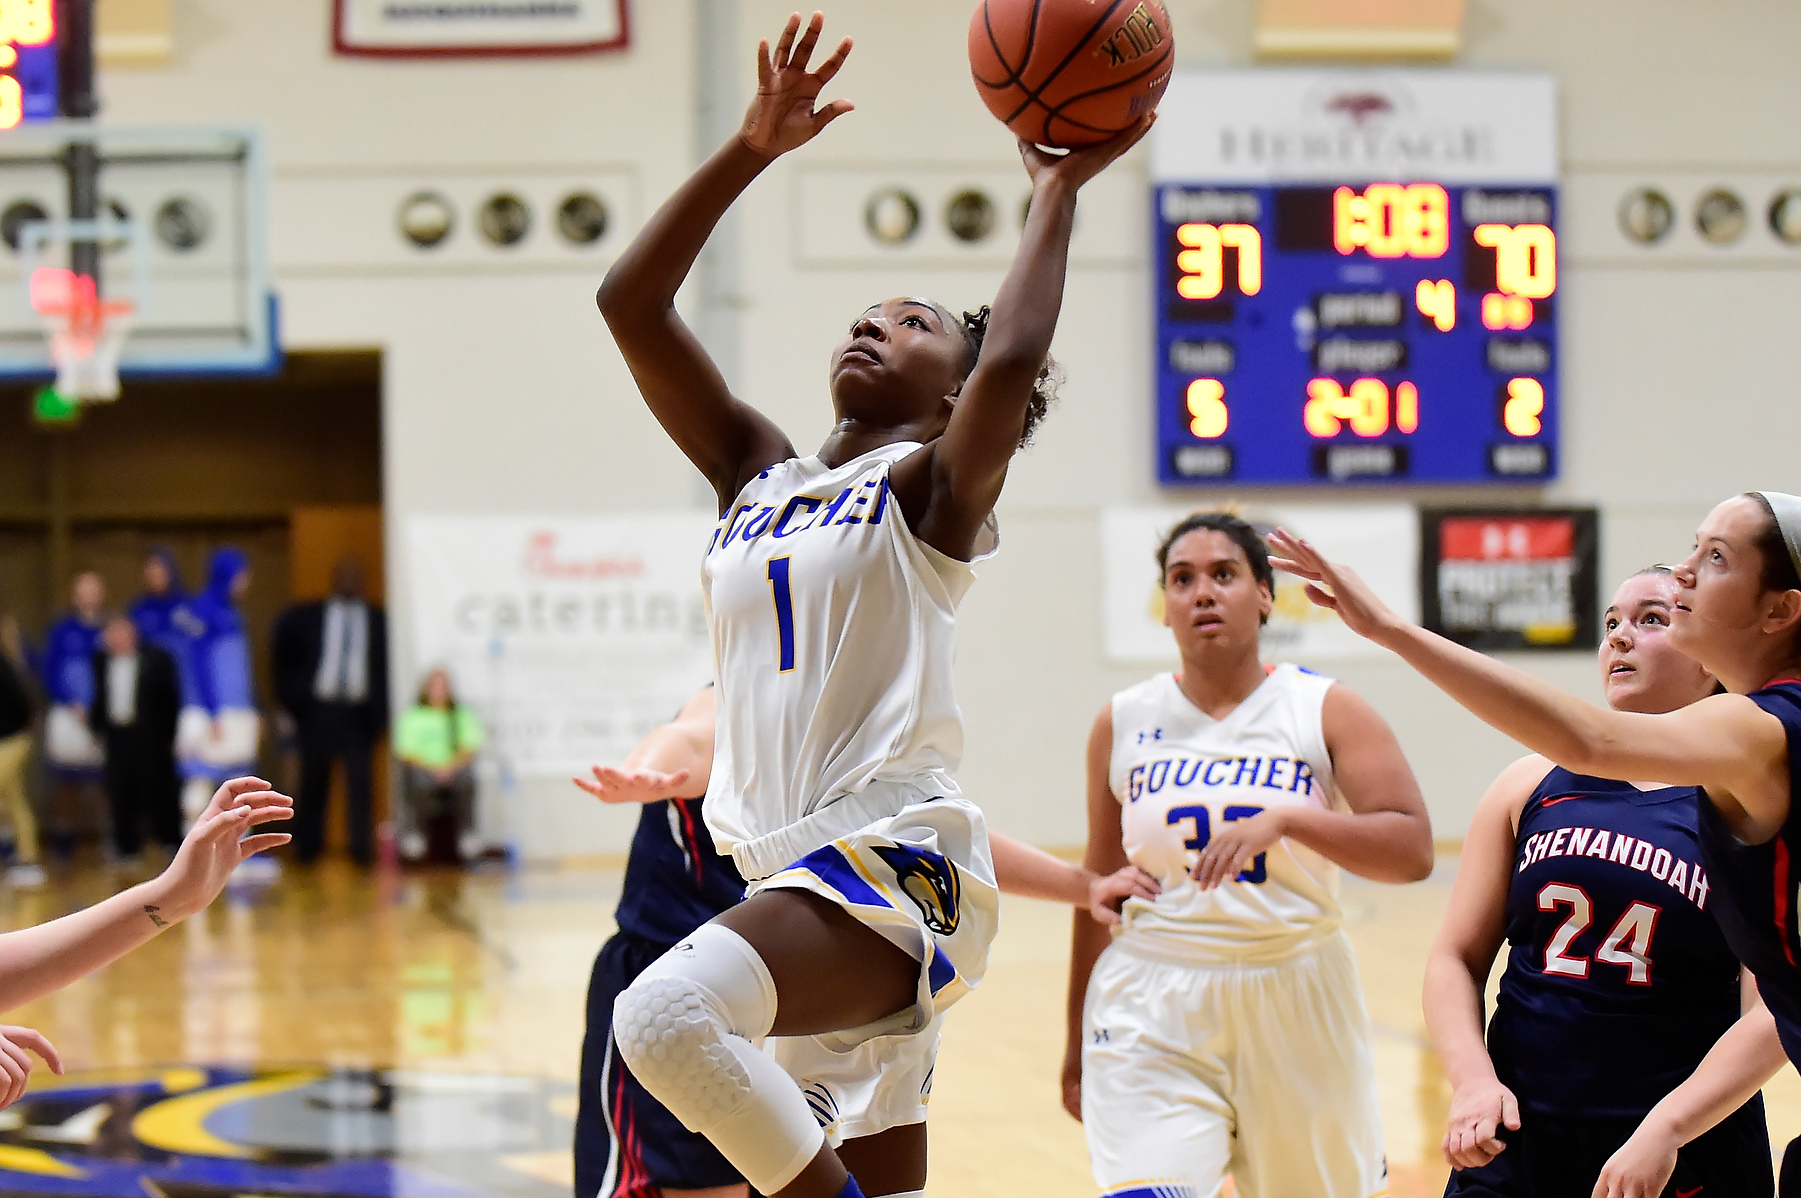 Women's Basketball's Lewis, Wolard Tally Career-Highs In Loss to Hood